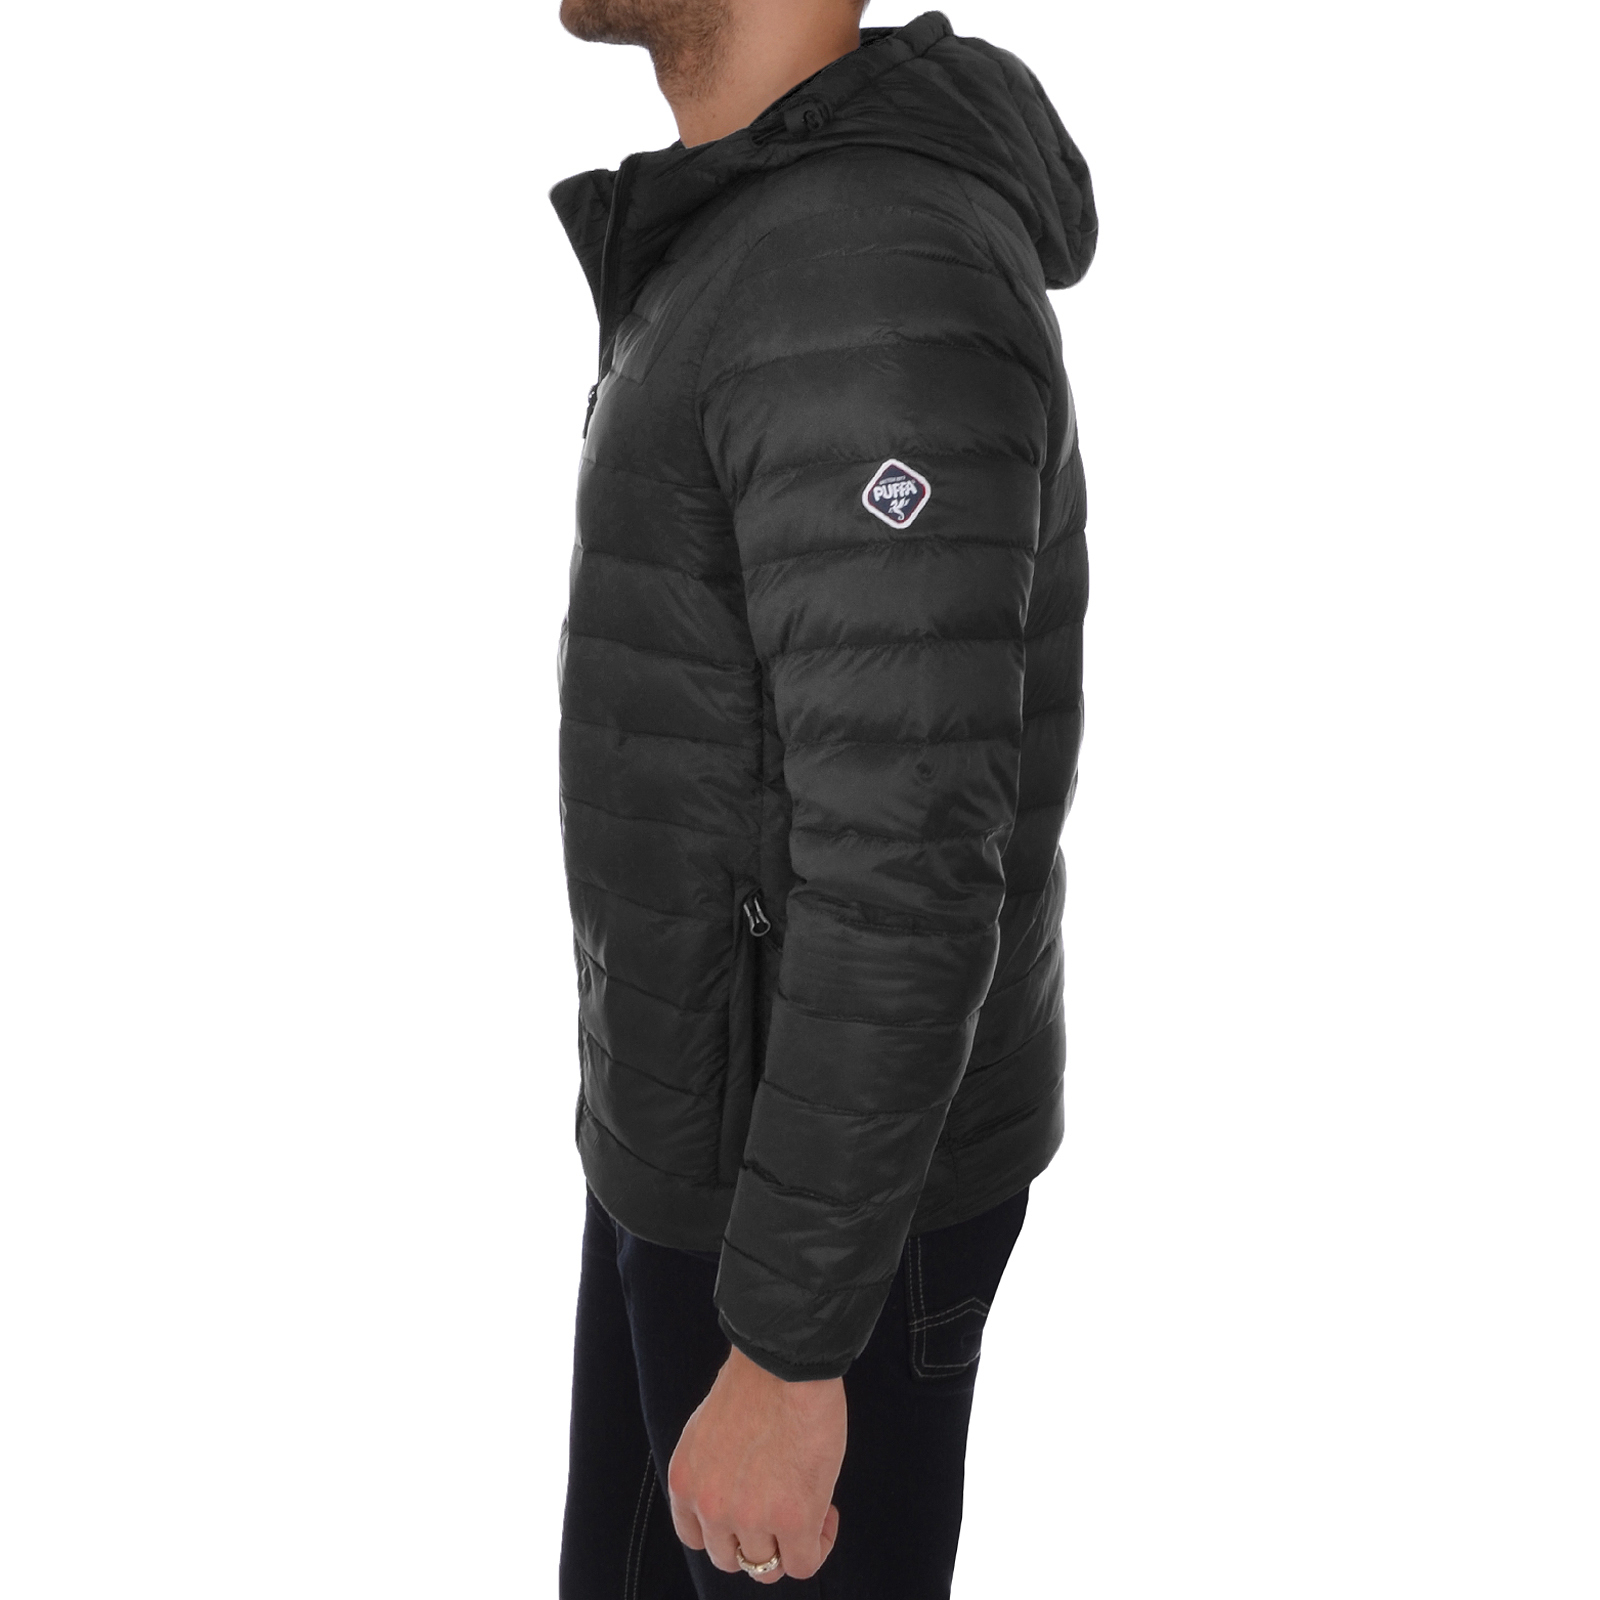 Thermoball Full Zip Jacket